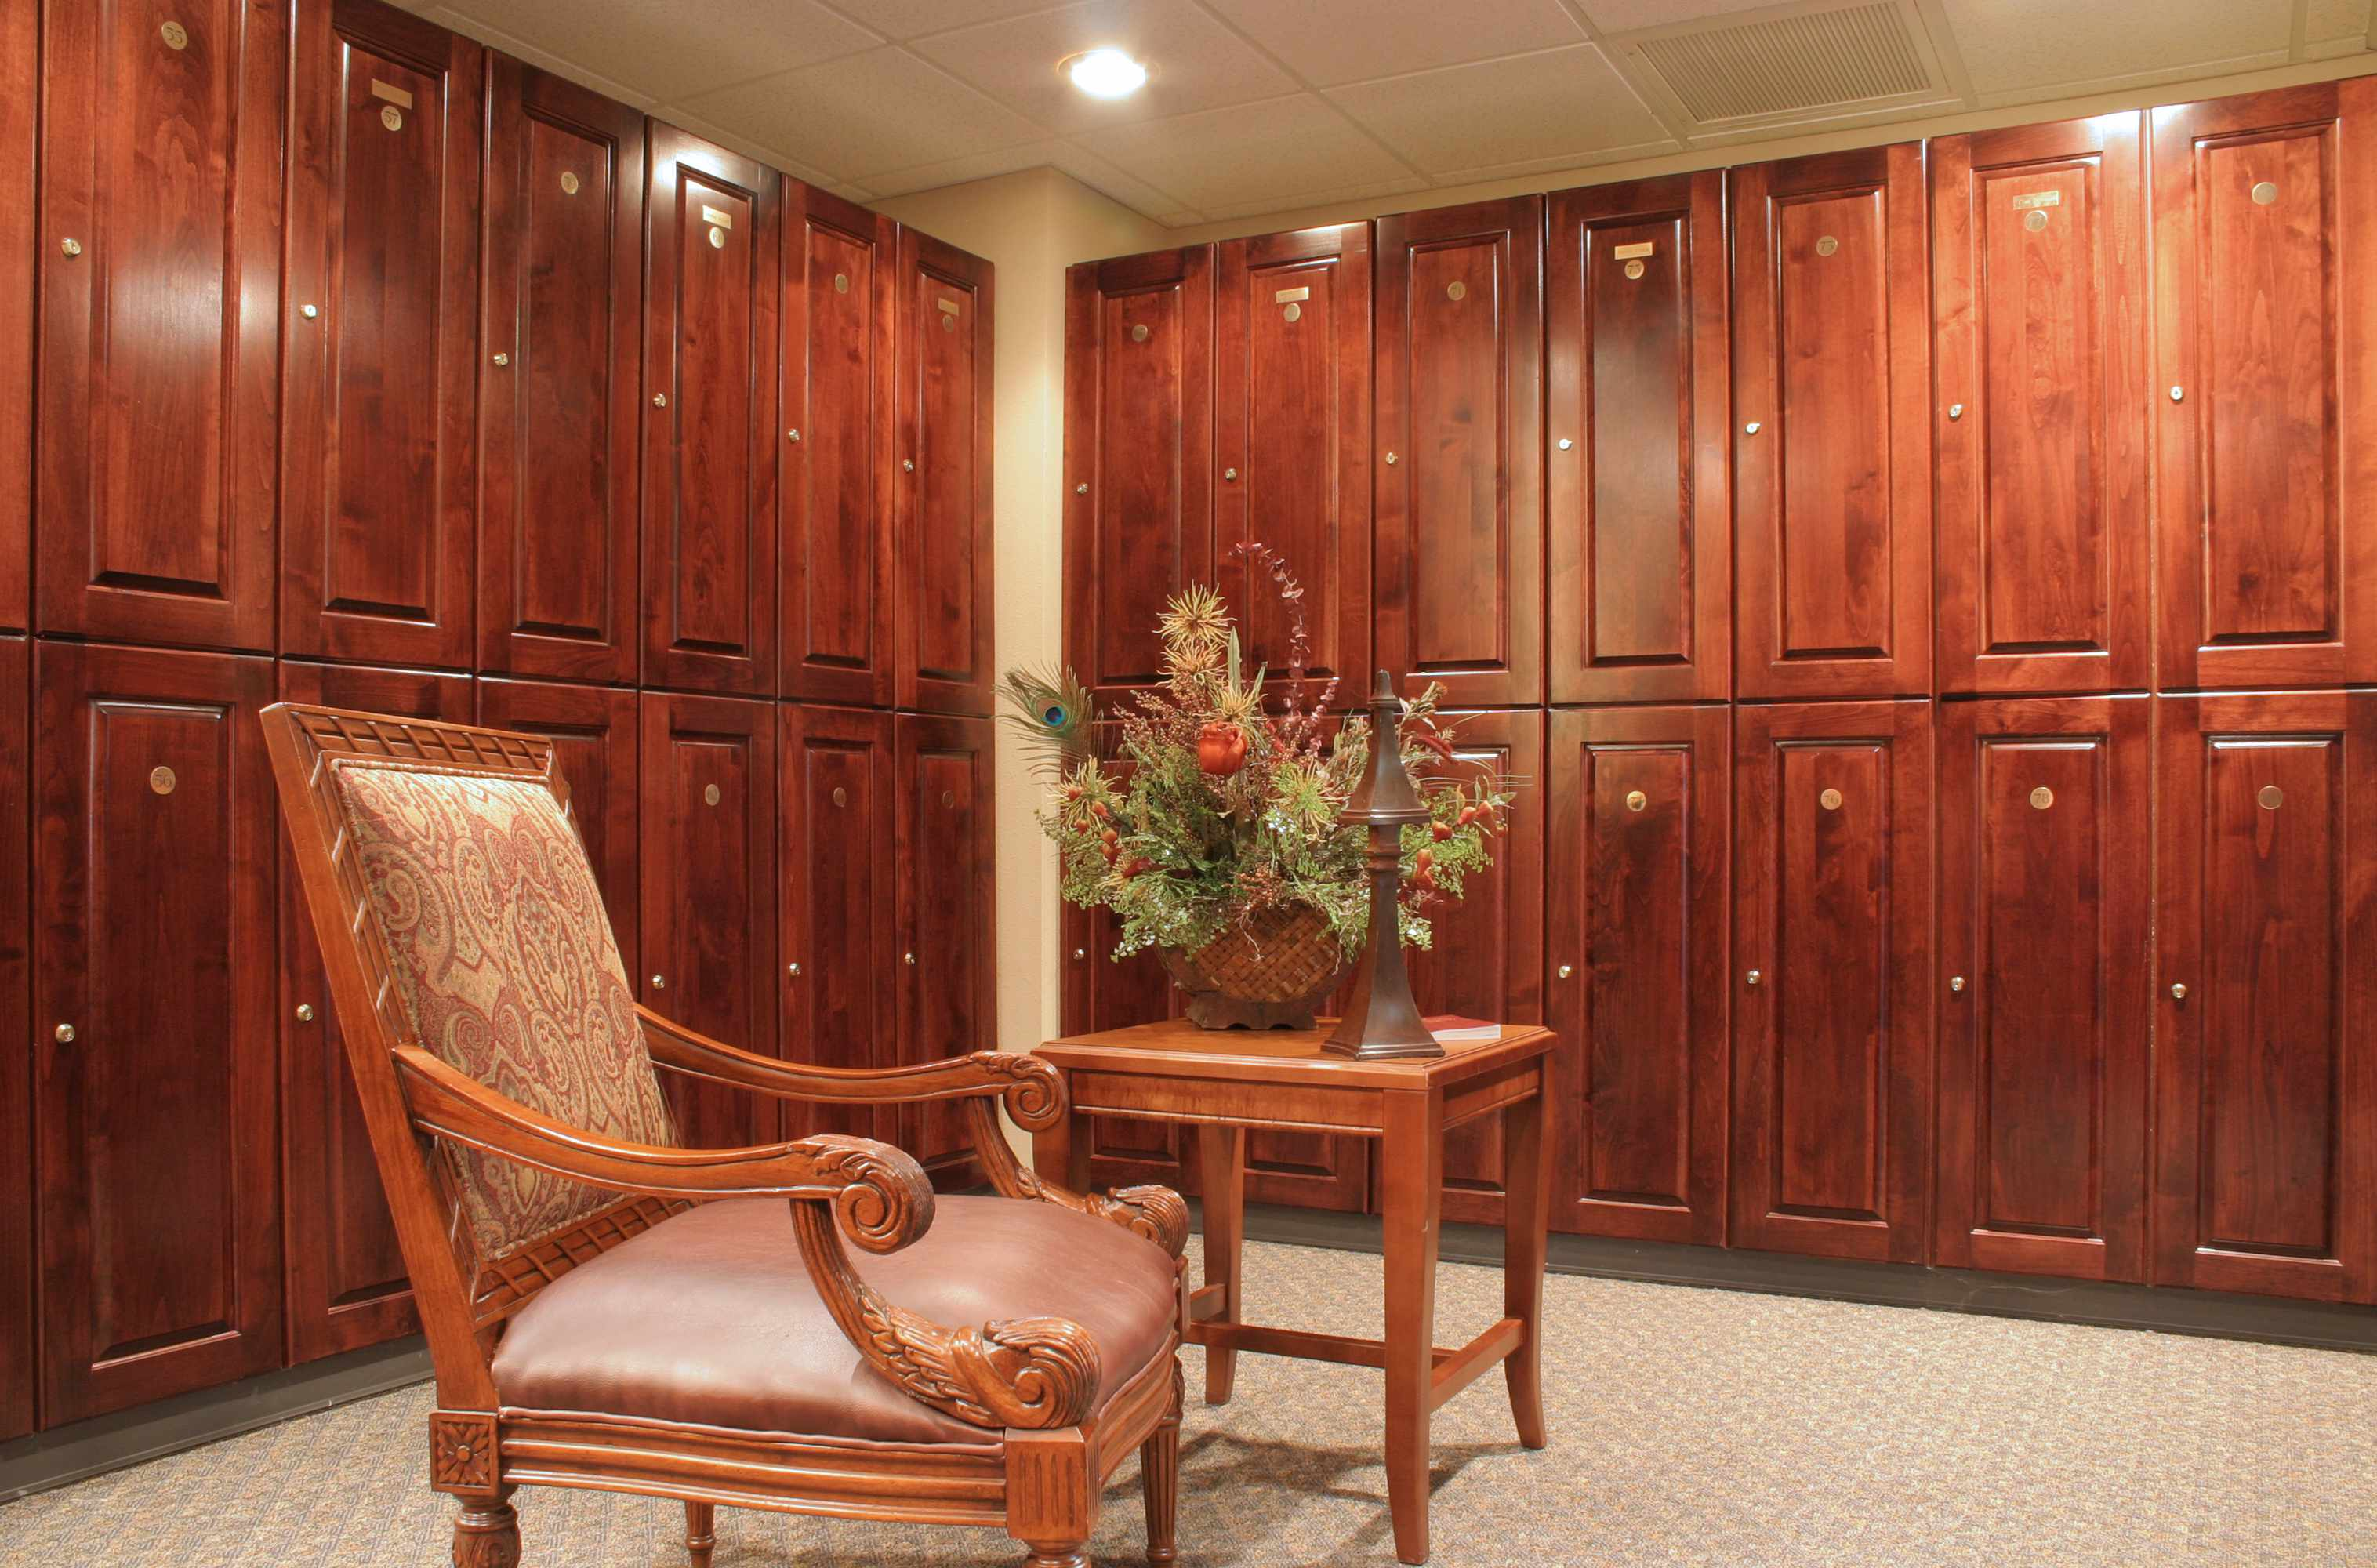 When It Comes To Locker Room Design U0026 Innovation, Wood Is Good Just The Way  It Is.